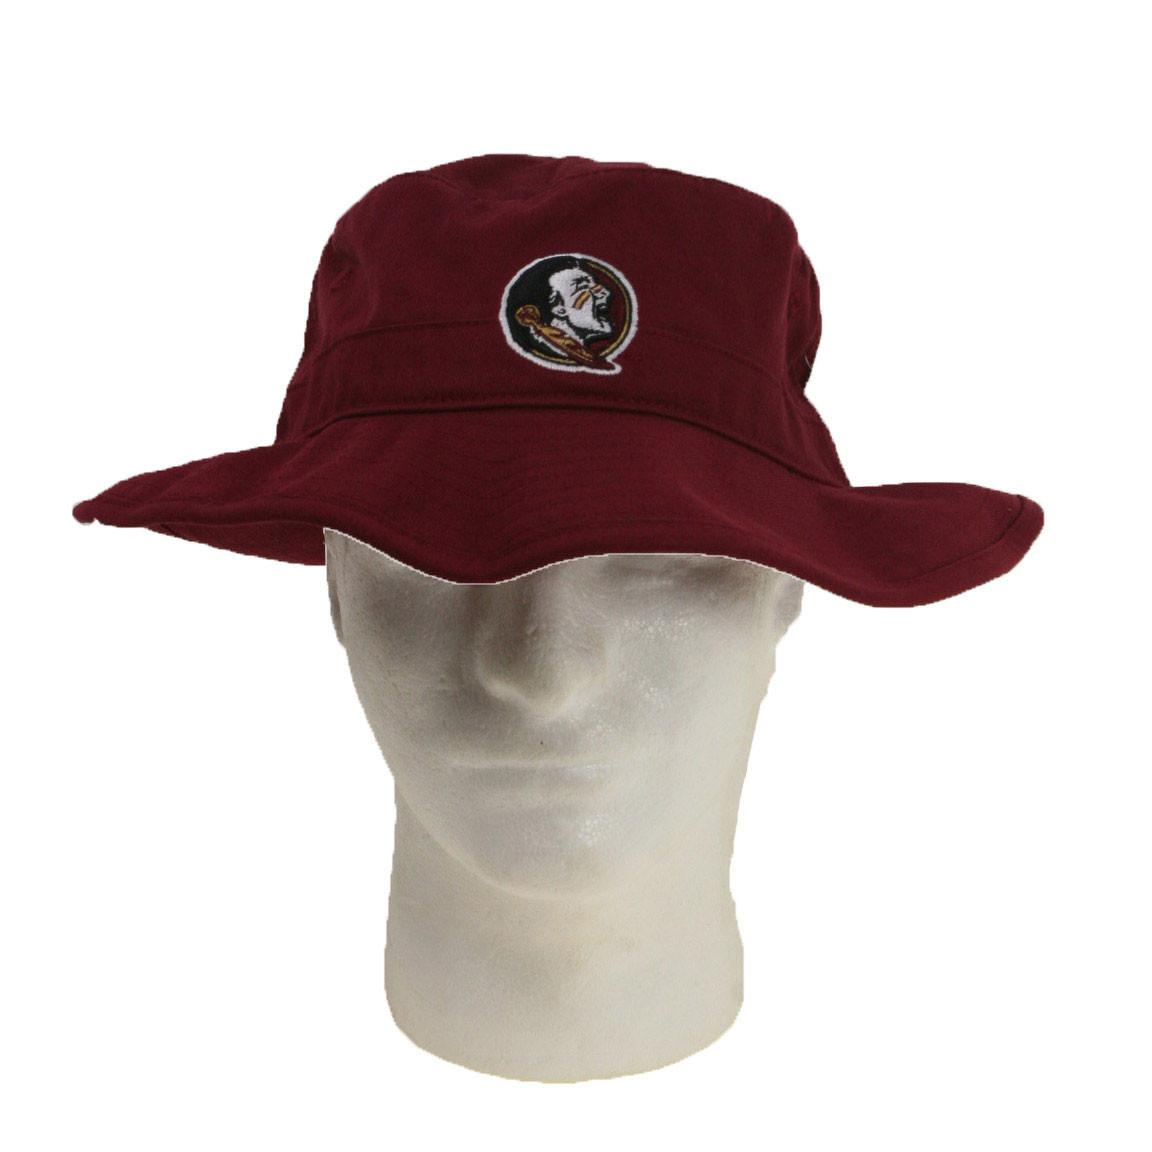 Officially Licensed, Florida State Seminoles Bucket Hat – Maroon